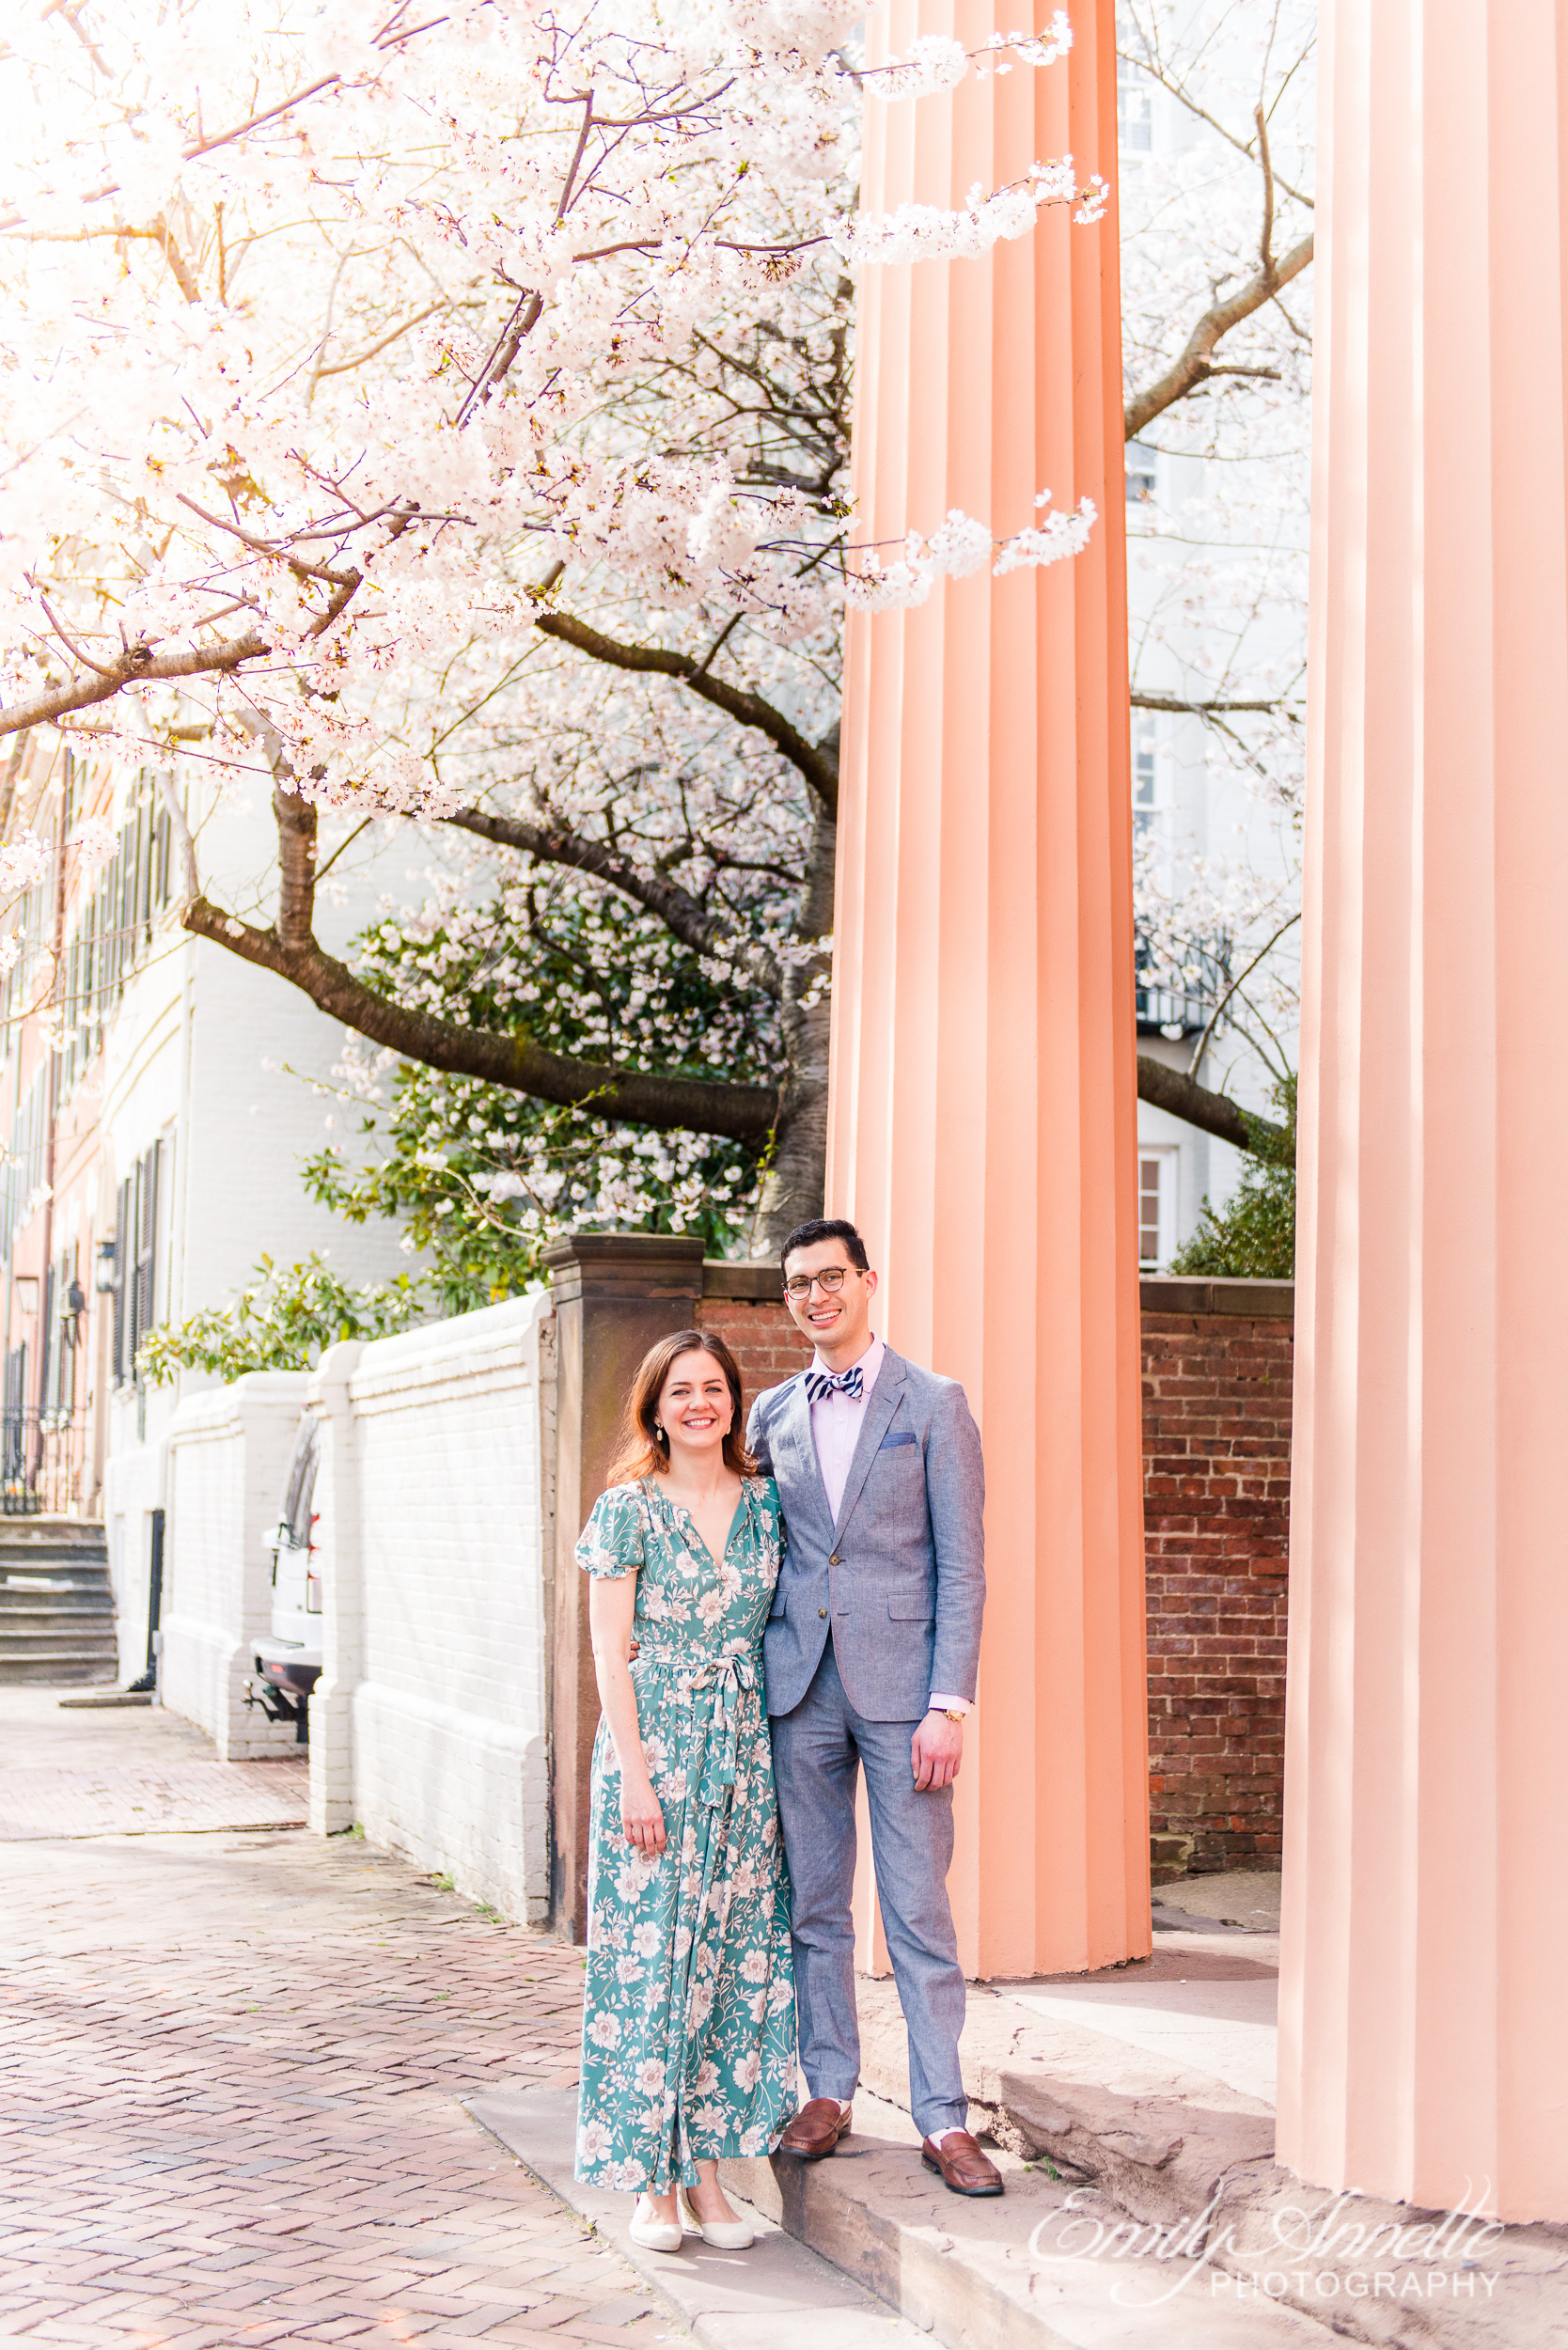 A couple poses for a portrait during their spring engagement session in Old Town Alexandria, Virginia